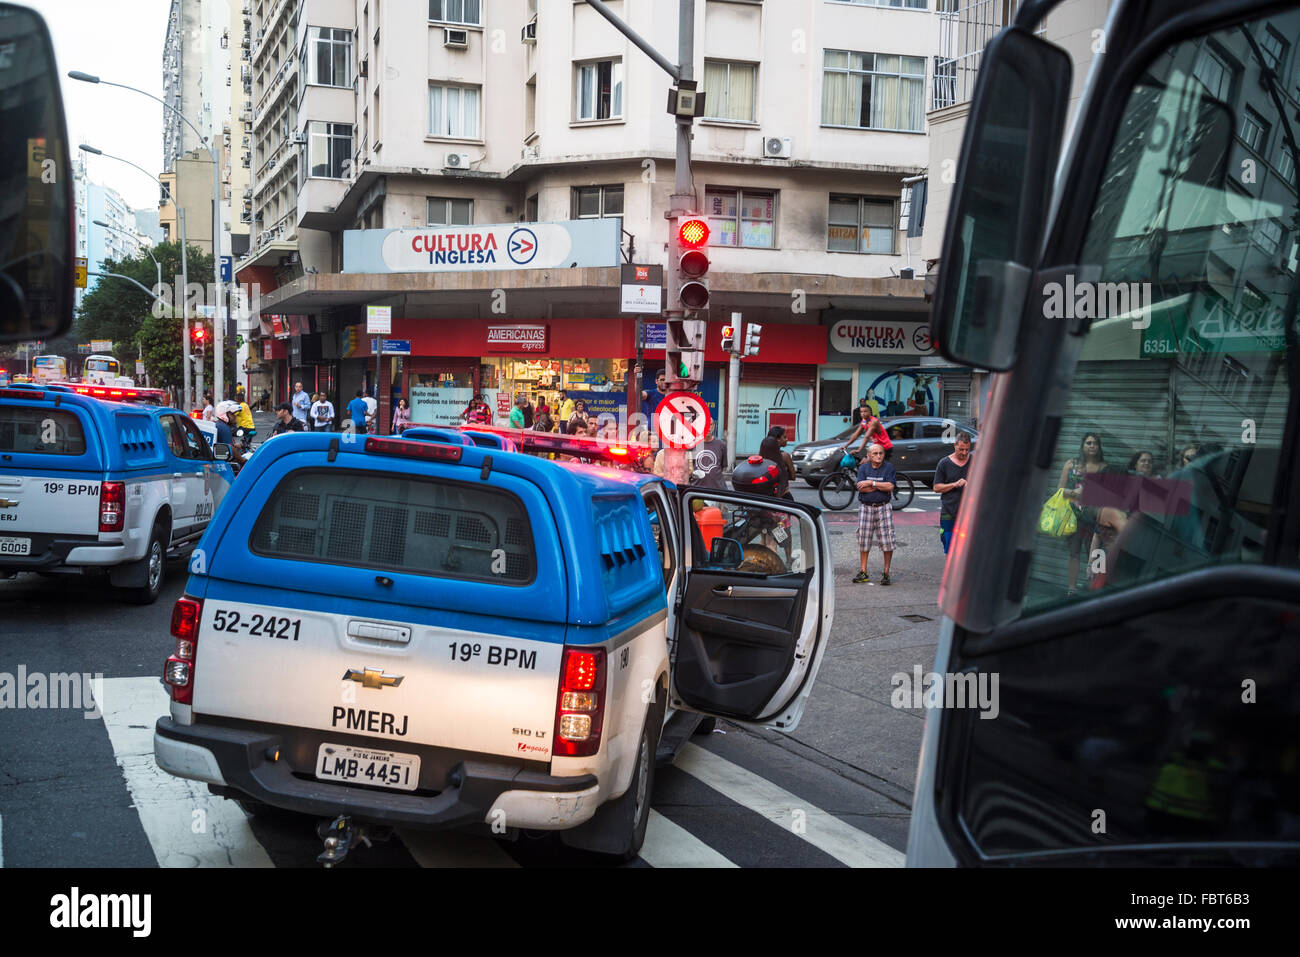 Police cars blocking the road, Copacabana, Rio de Janeiro, Brazil Stock Photo